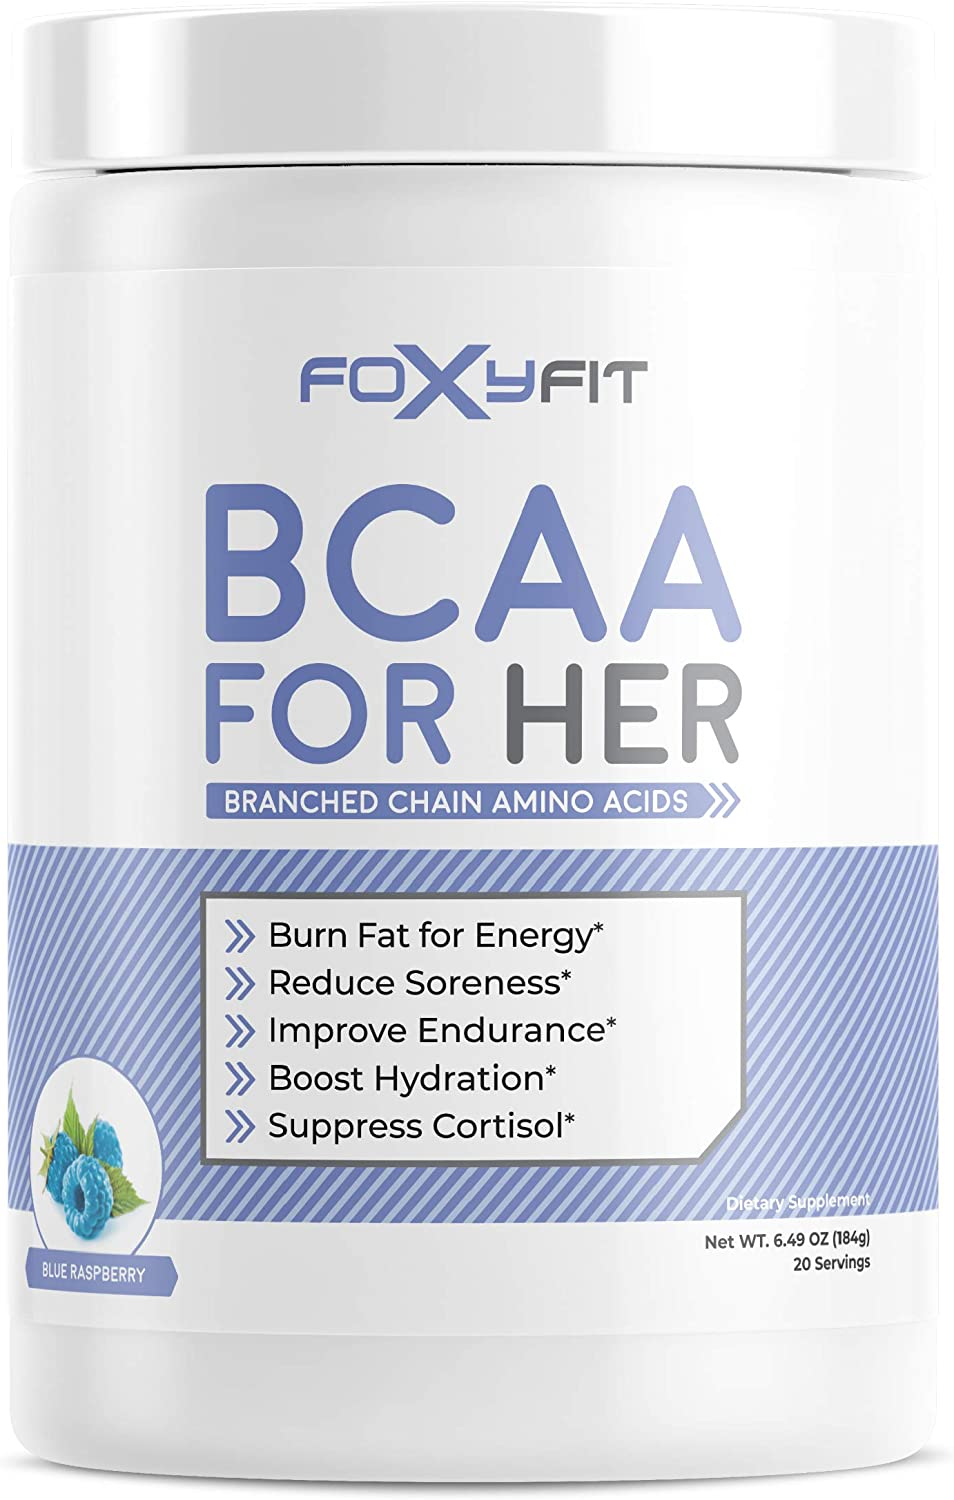 FoxyFit BCAA lowest price for Her Max 53% OFF Branched Chain Bo Amino Acids to Women